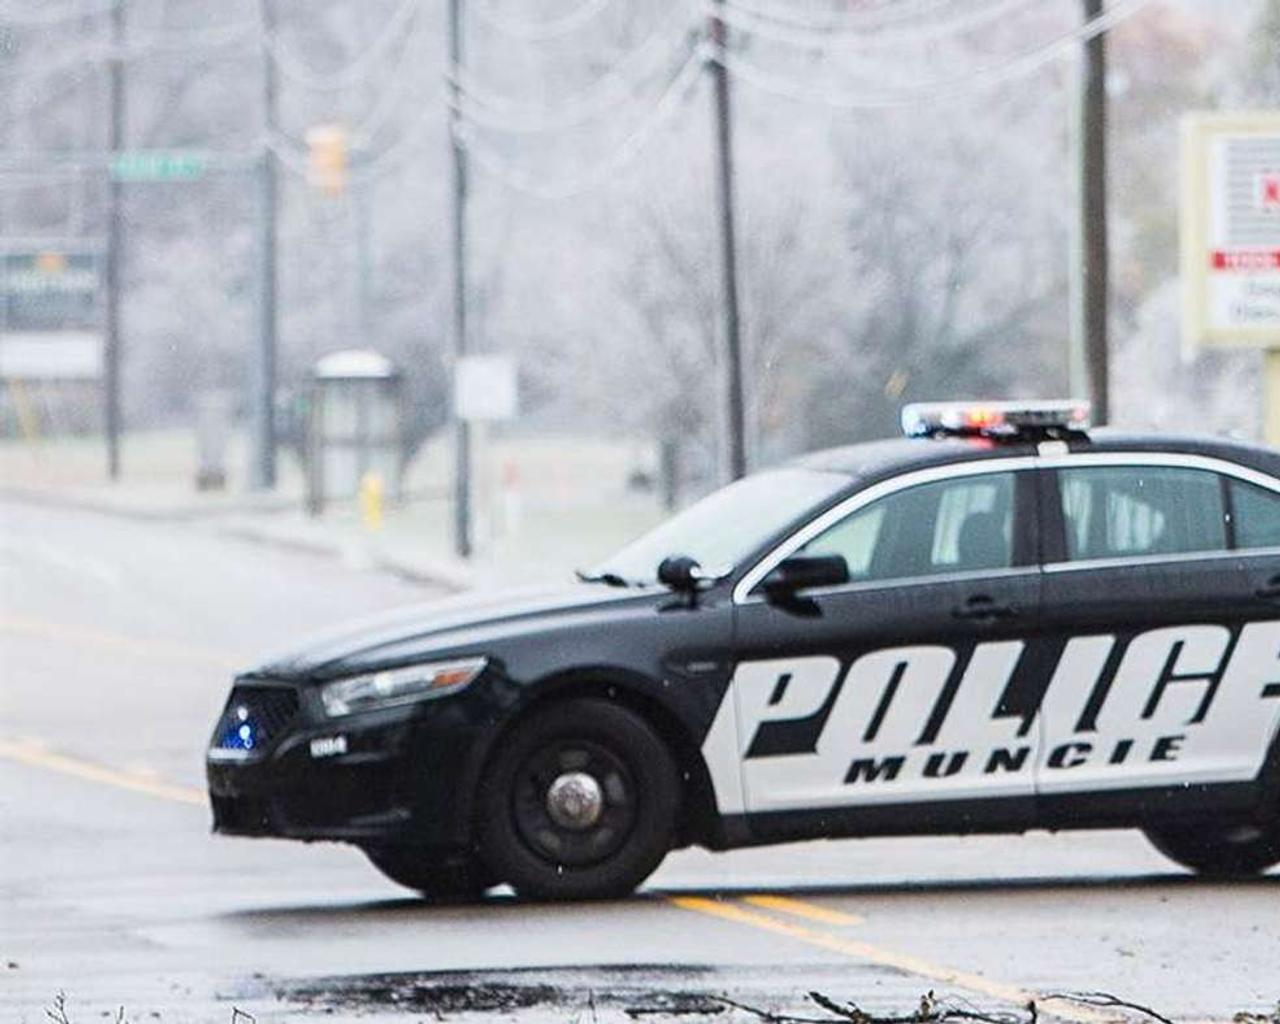 4 police officers in Muncie, Indiana, now face charges in excessive force case